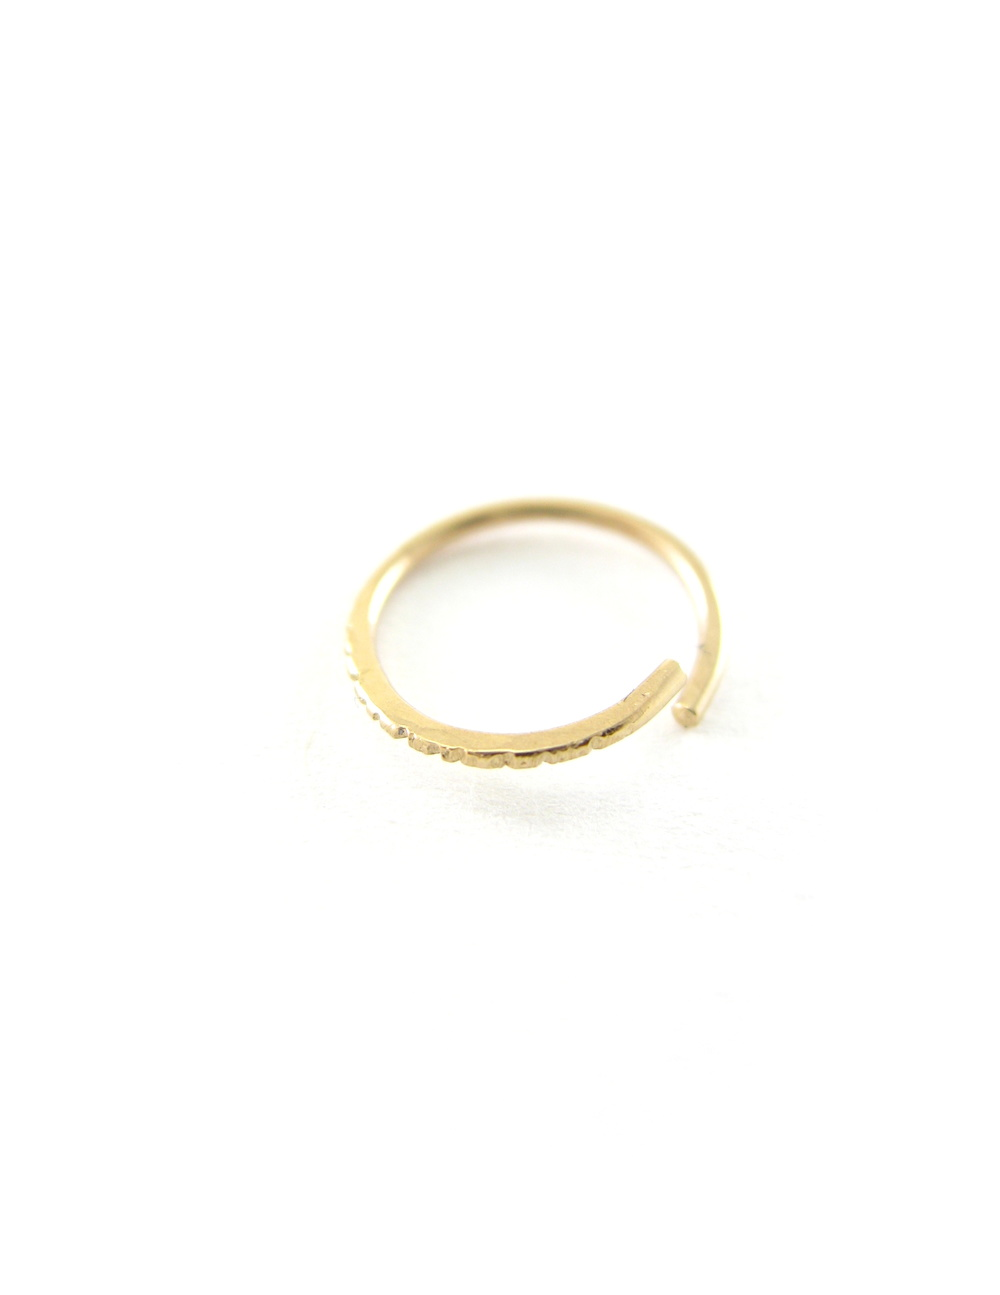 TEXTURED NOSE RING RECYCLED 14K GOLD Sharon Z Jewelry